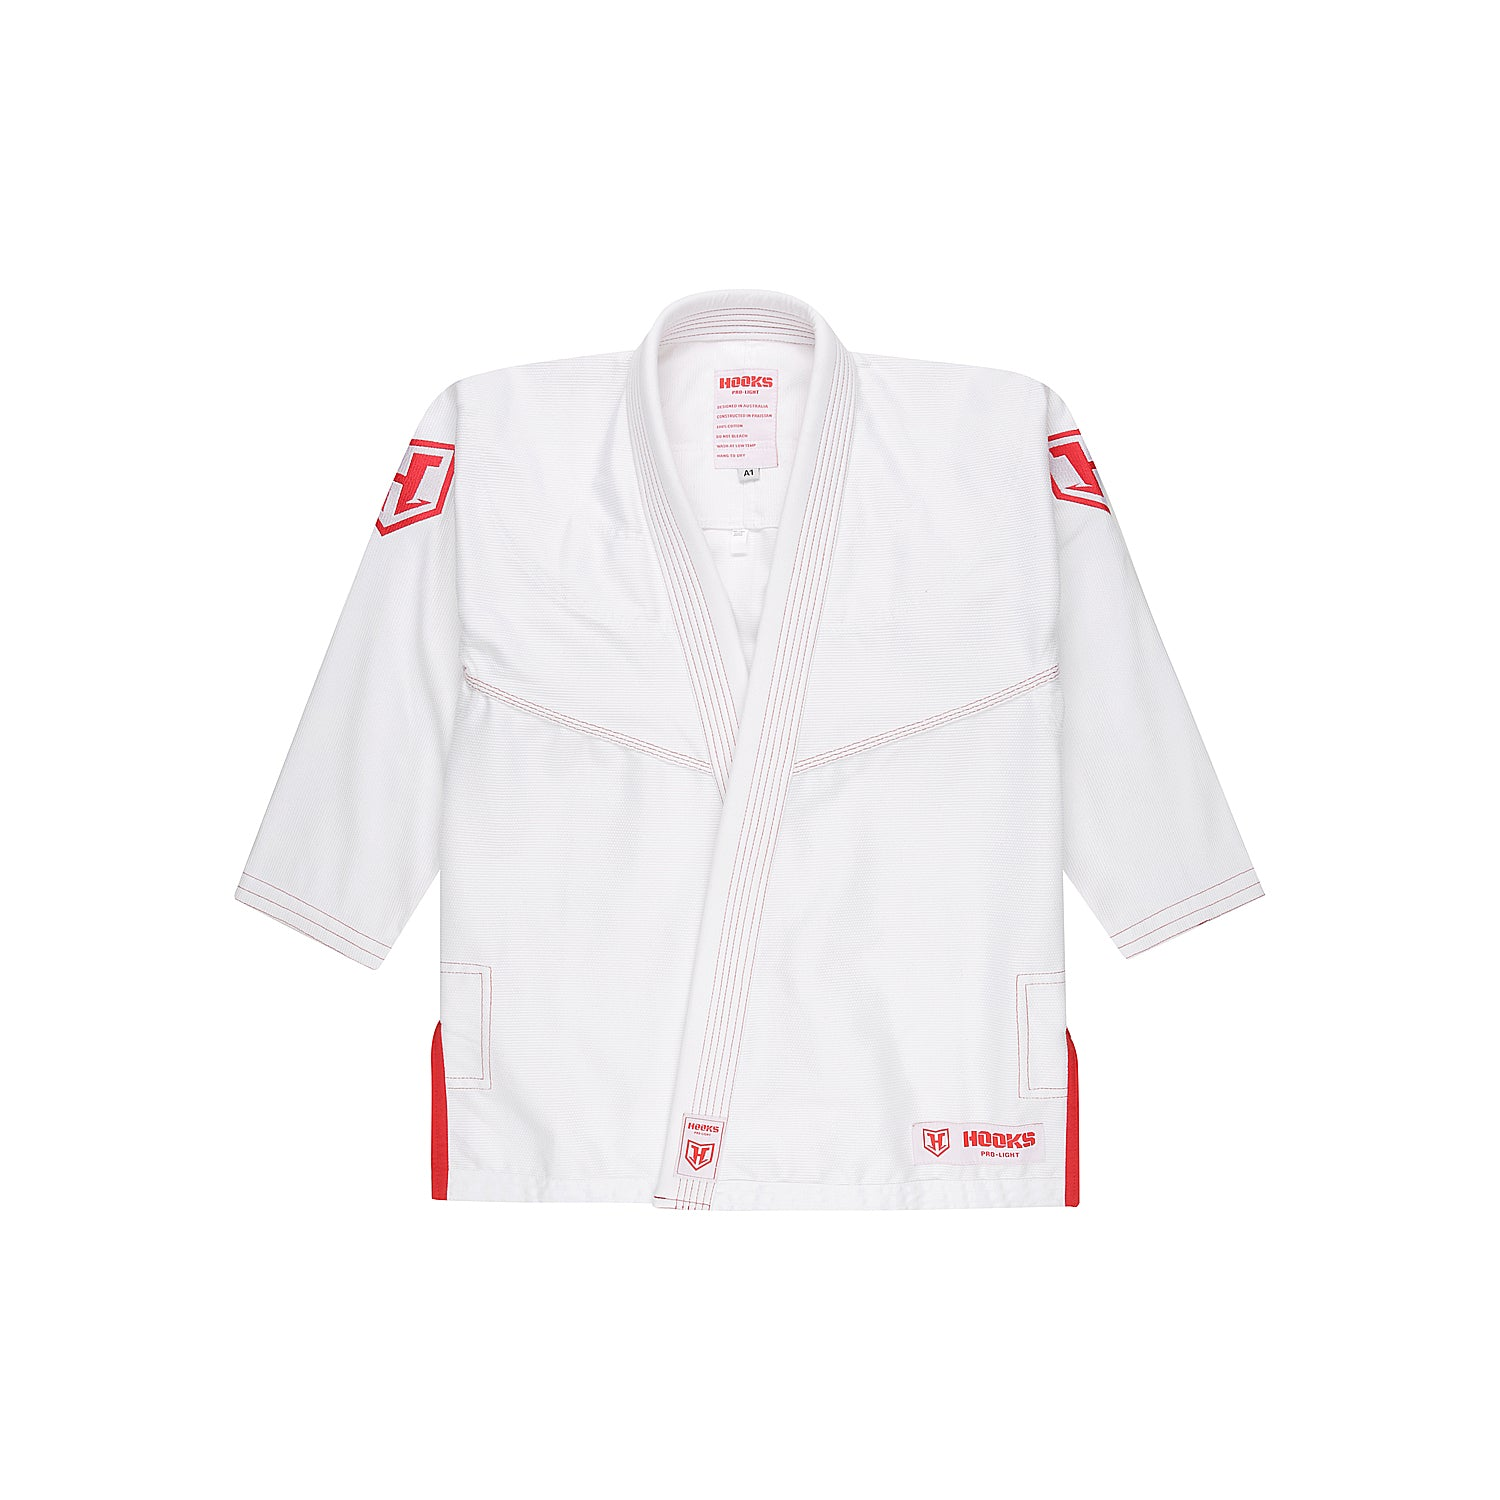 Hooks Pro Light Jiu Jitsu Gi -  Limited Edition White/Red